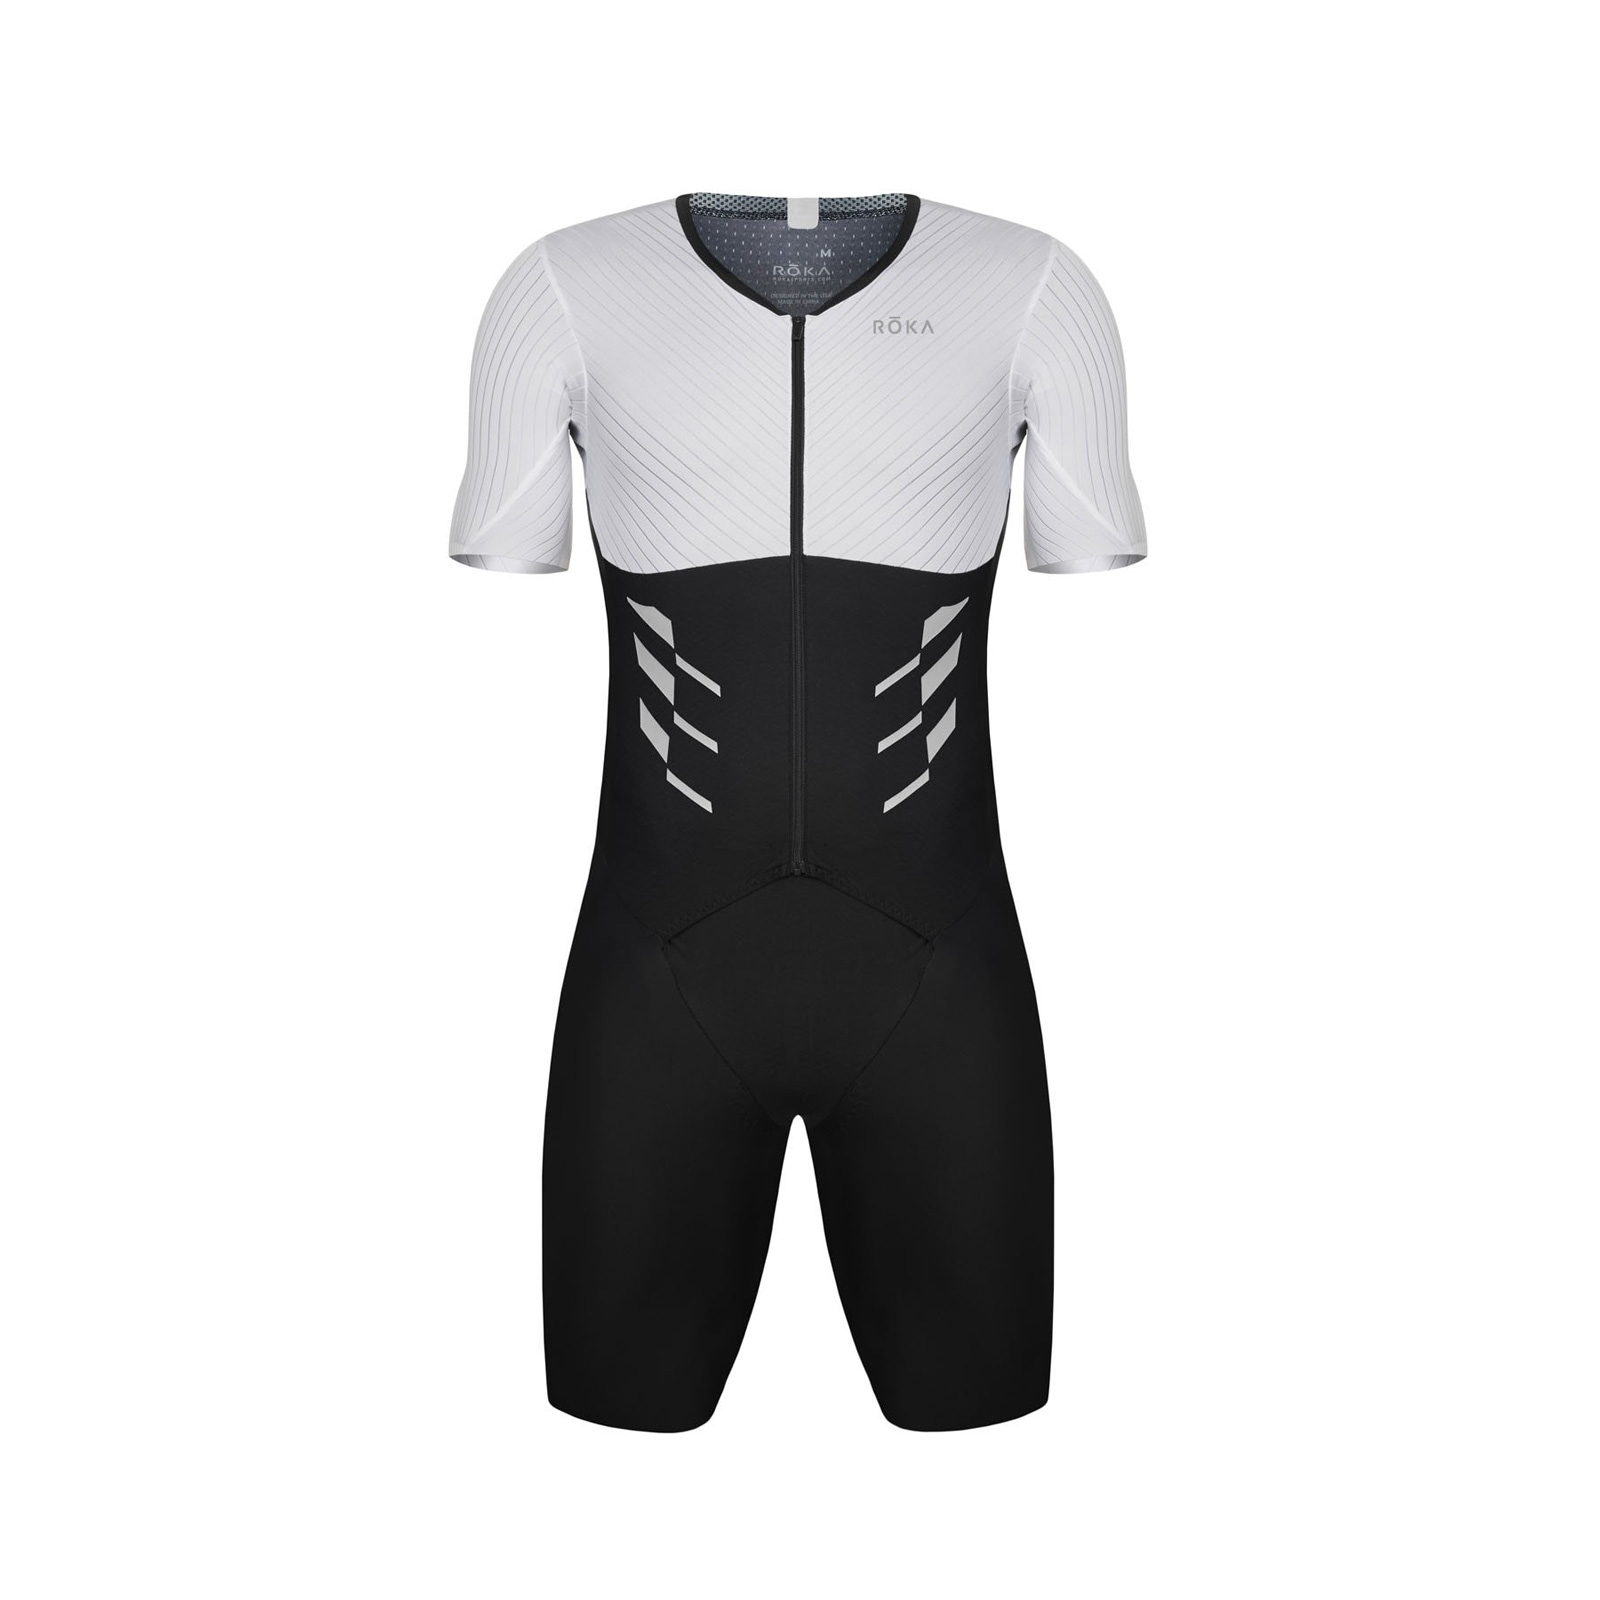 Gen 2 Elite Aero Short Sleeve Tri Suit Product Image